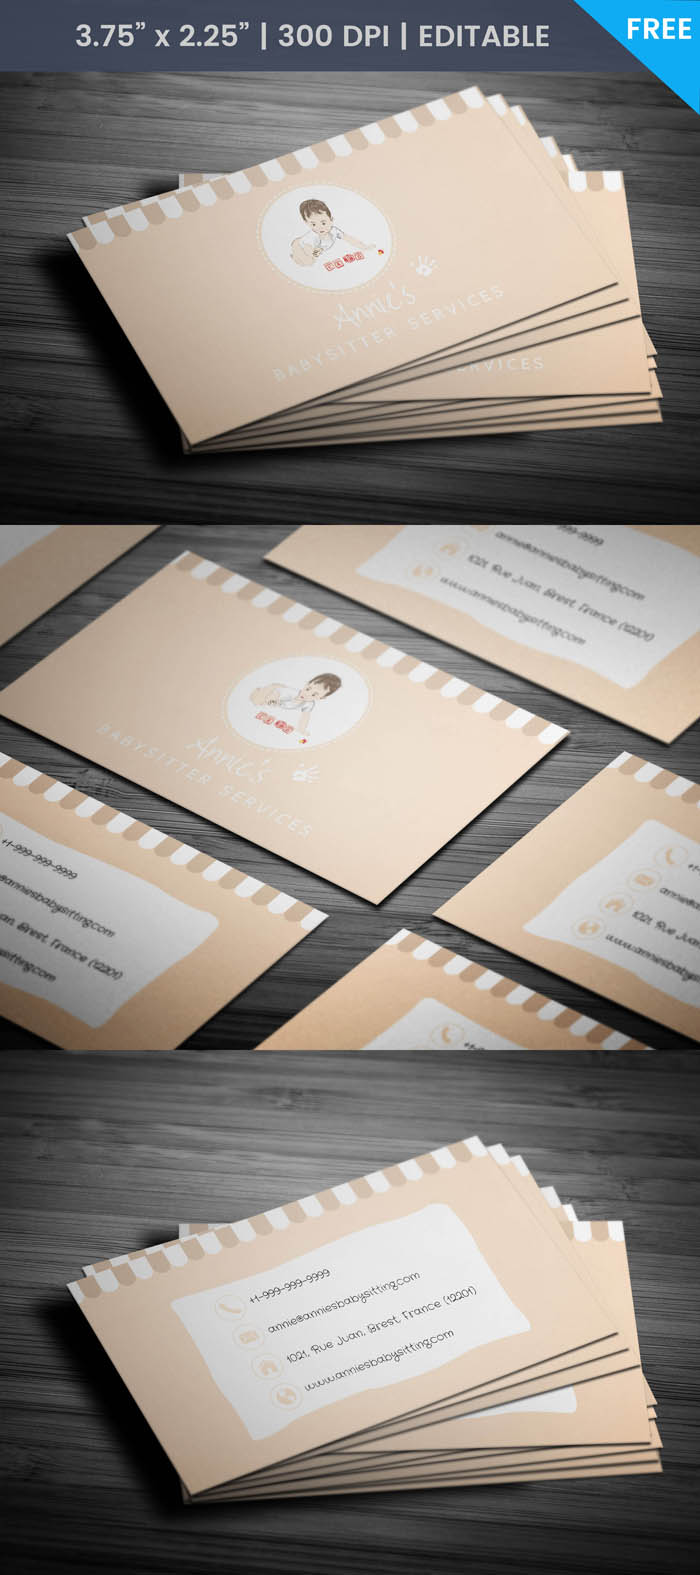 Free Adorable Babysitting Business Card Template